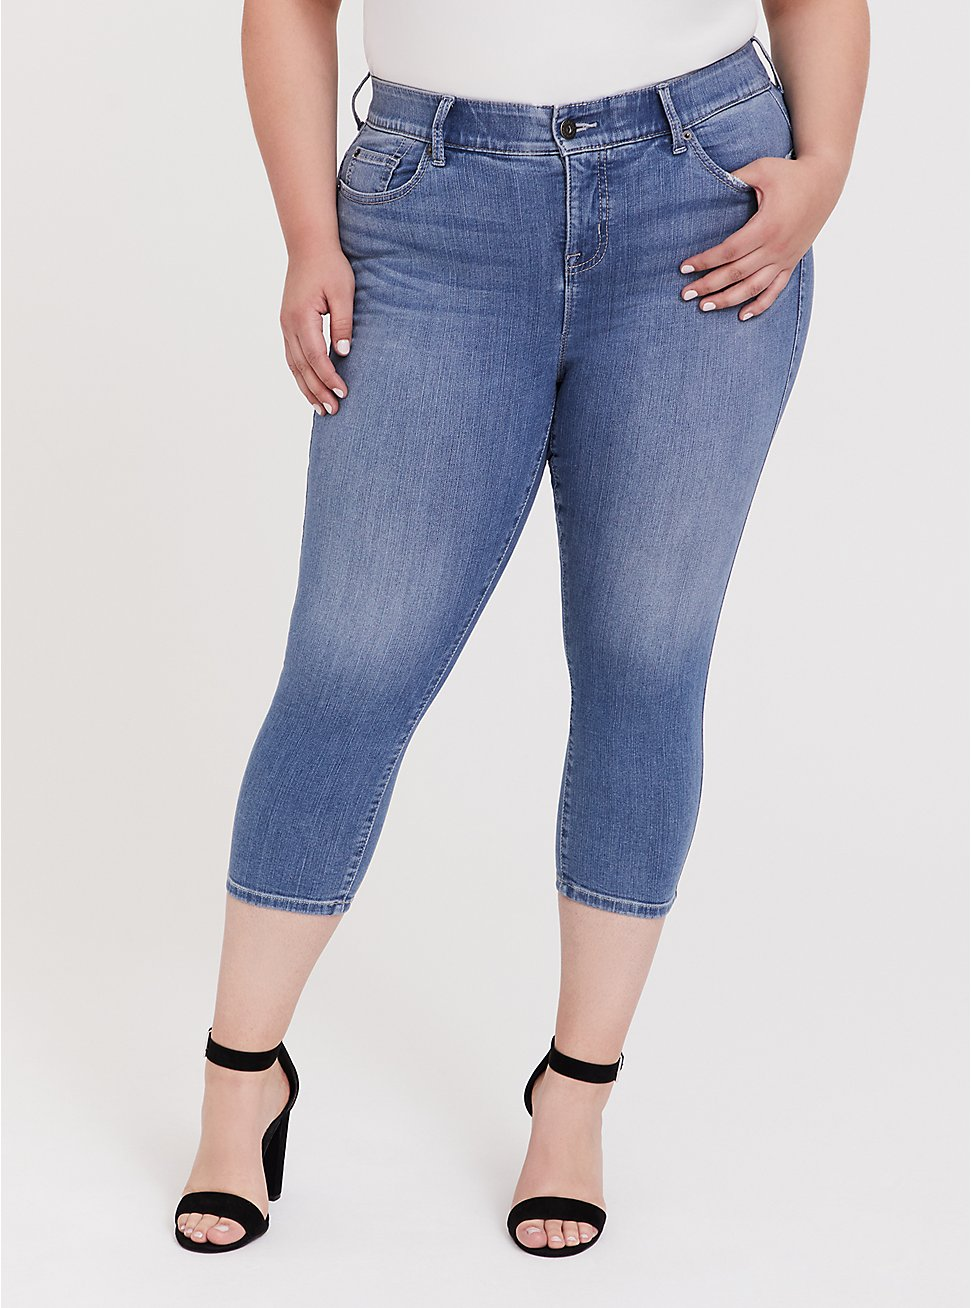 Plus Size Crop Bombshell Skinny Jean – Premium Stretch Medium Wash, SANDS END, hi-res